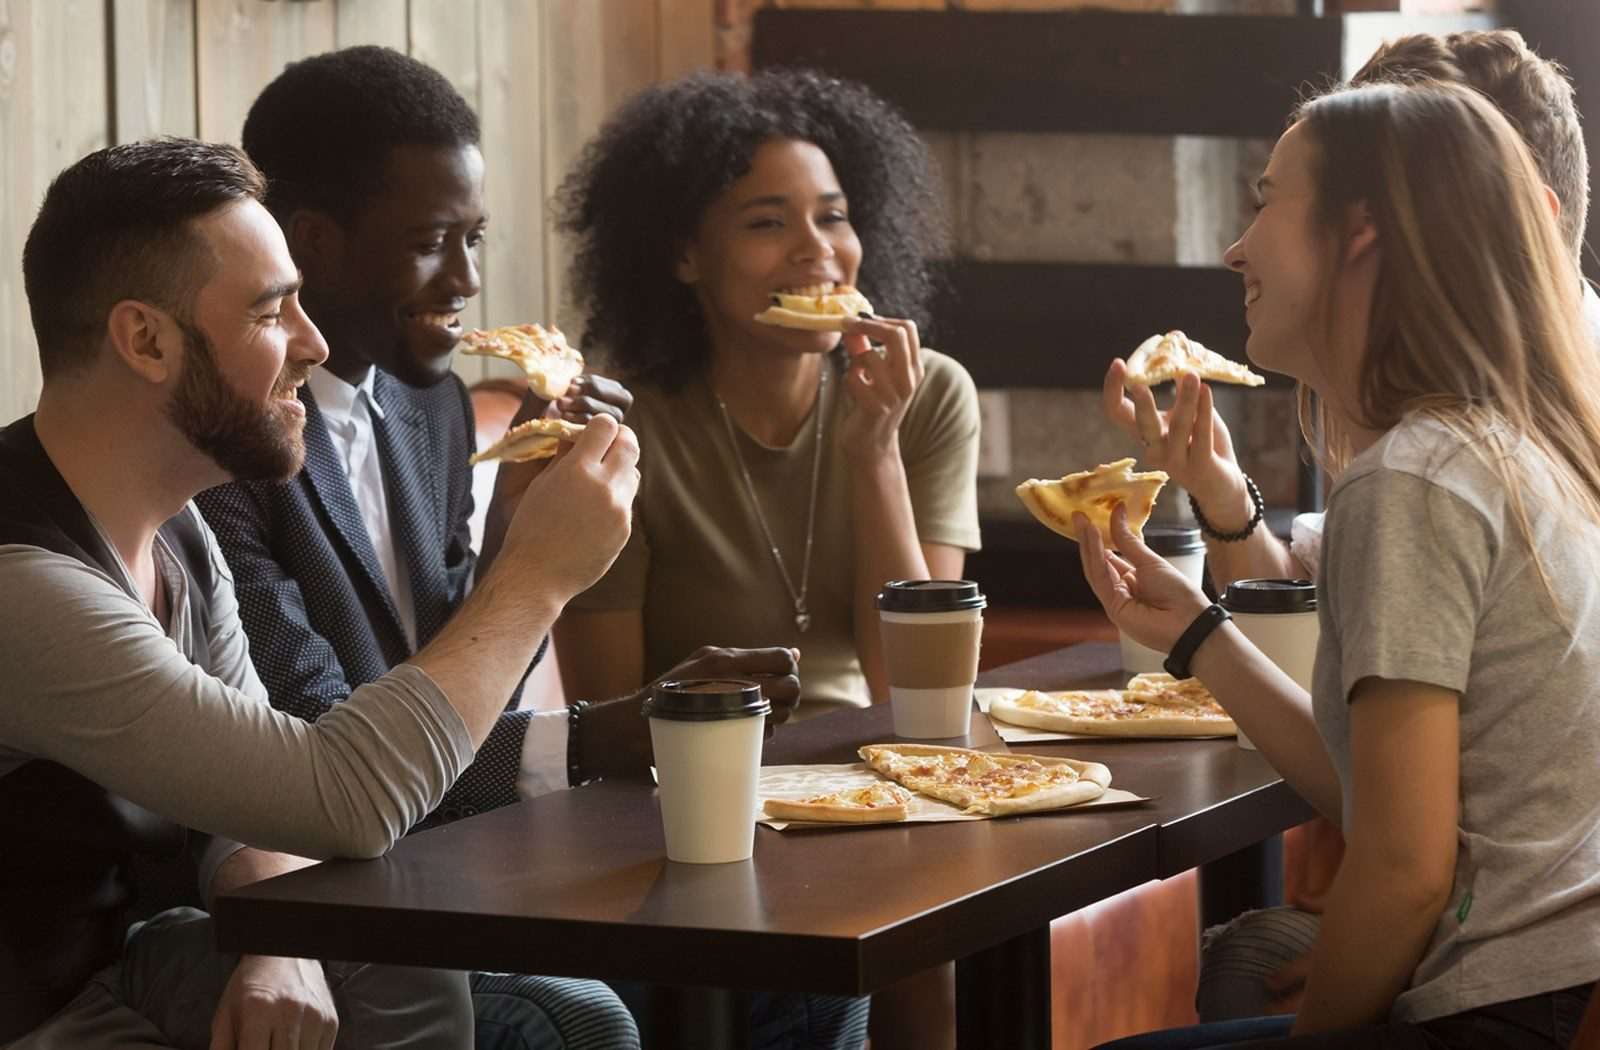 Friends eating pizza and drinking coffee